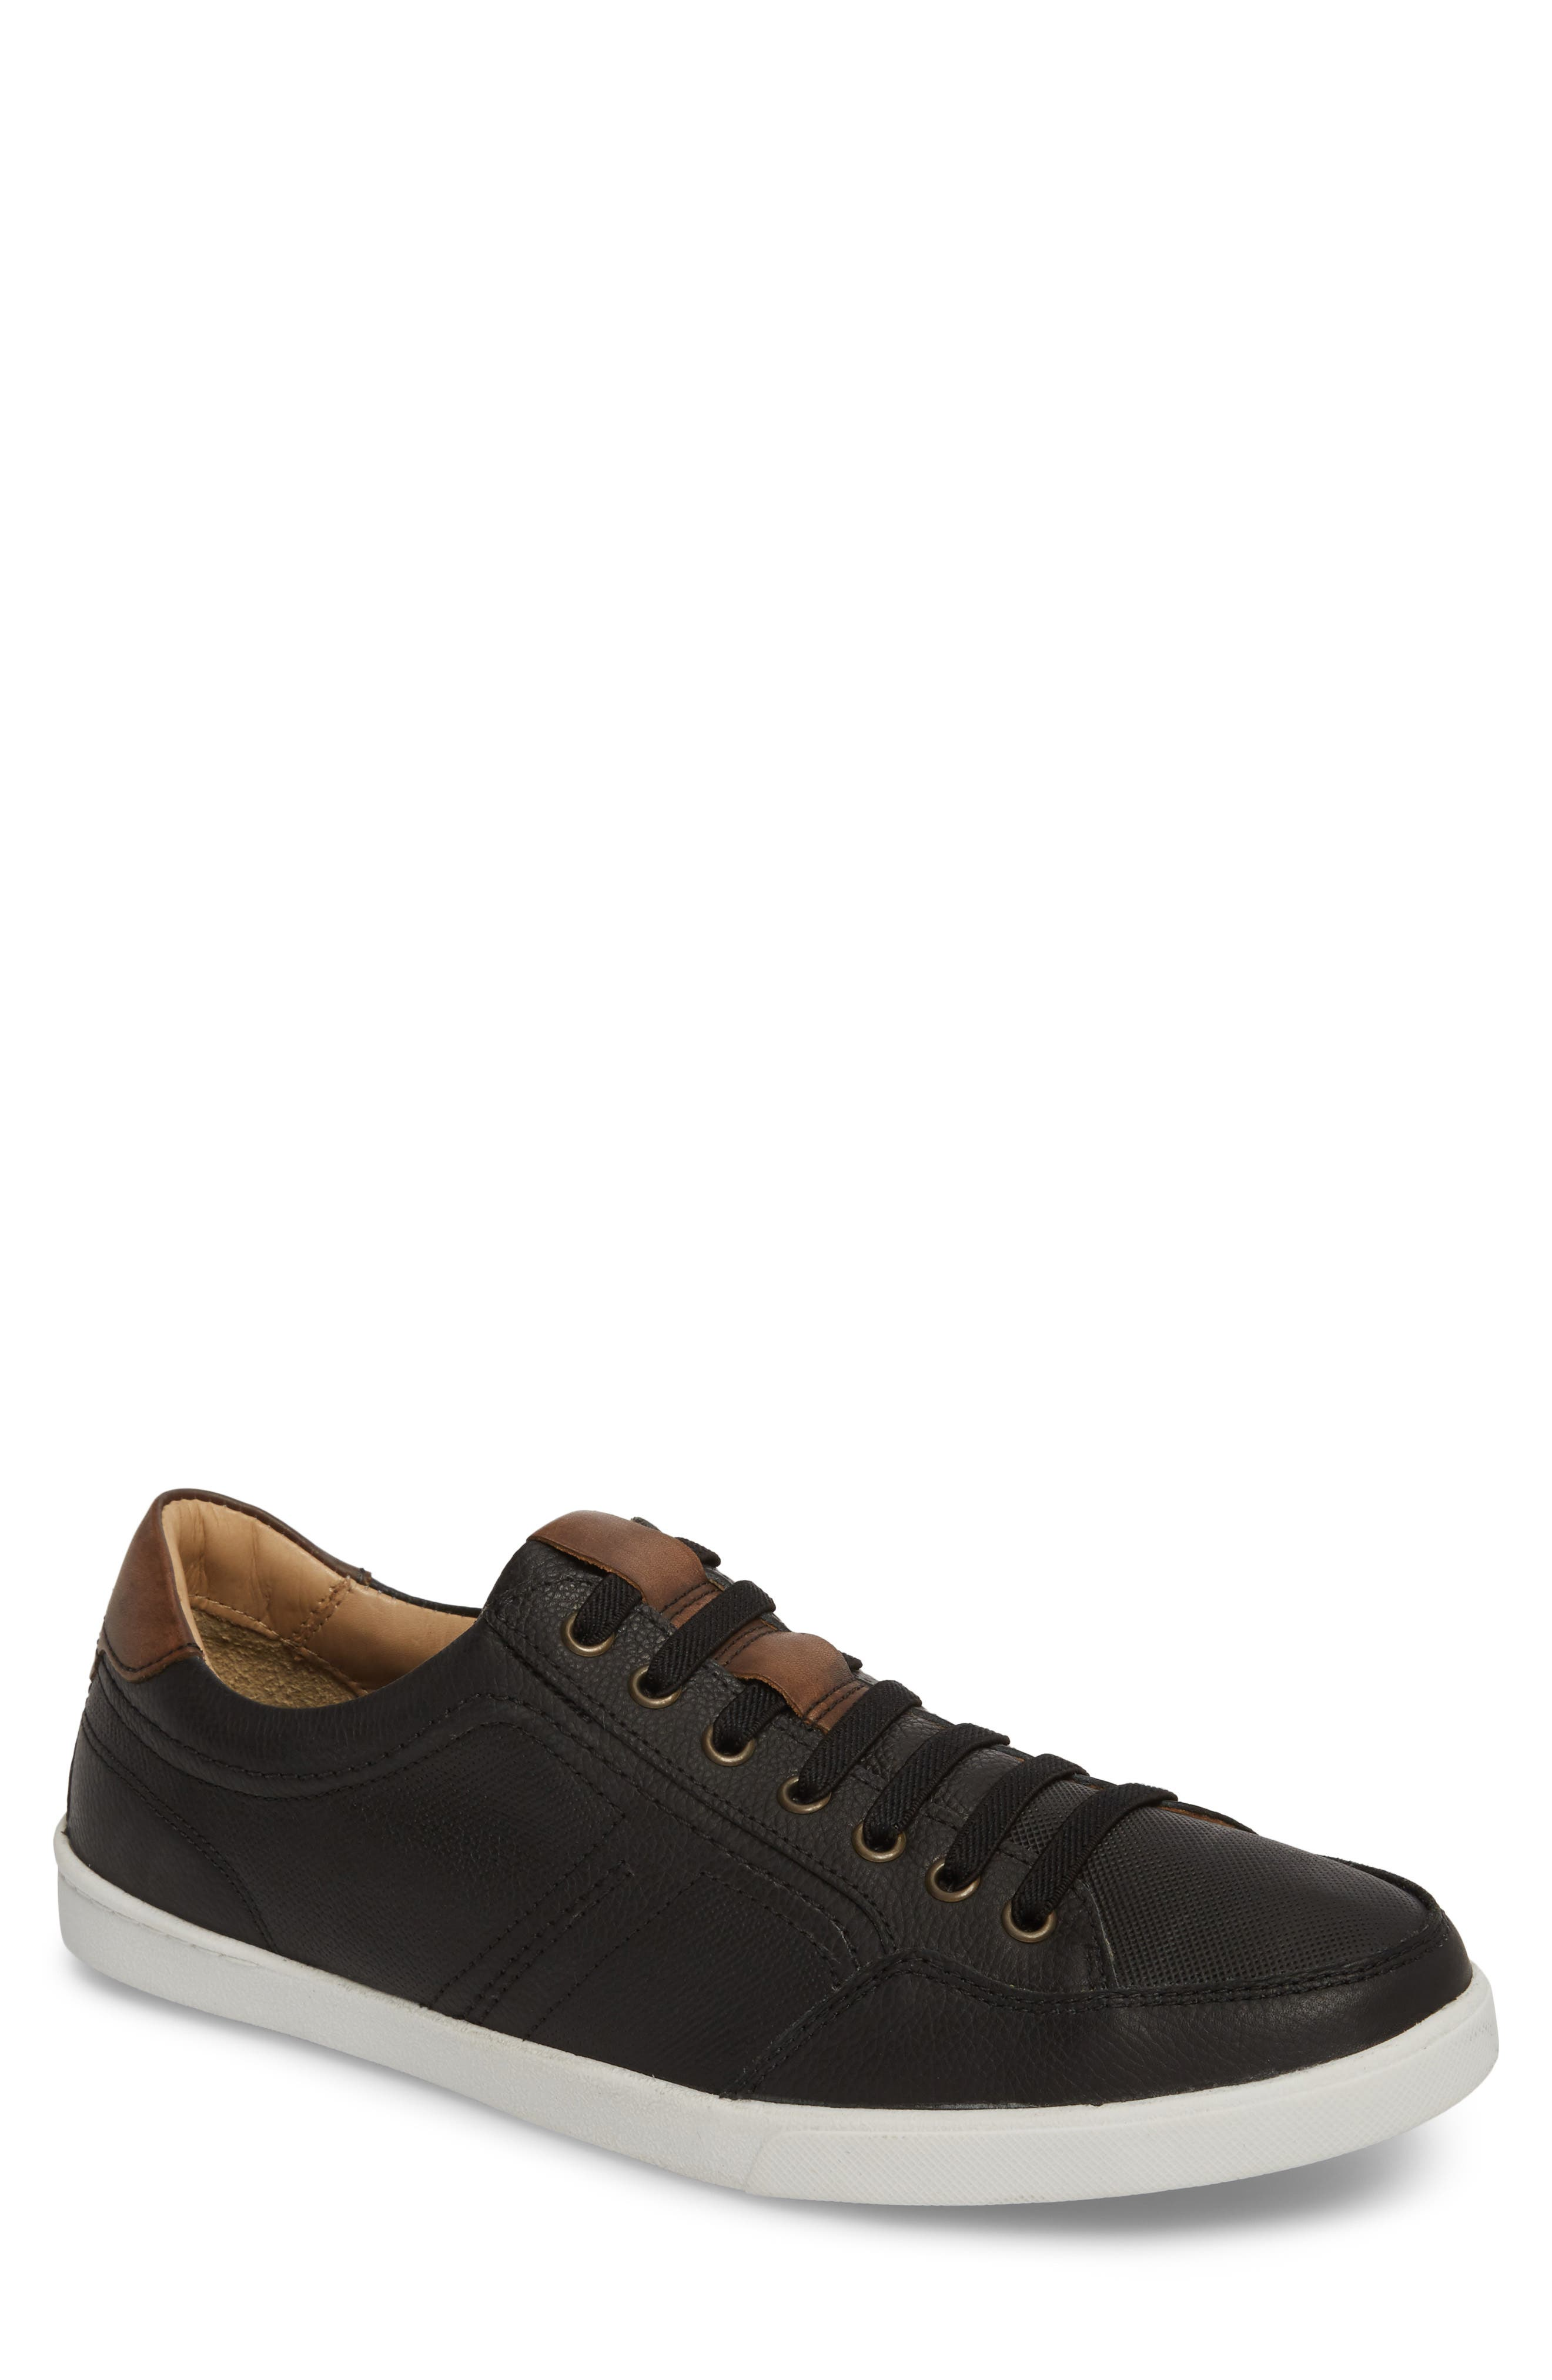 Quinton Textured Low Top Sneaker,                             Main thumbnail 1, color,                             BLACK LEATHER